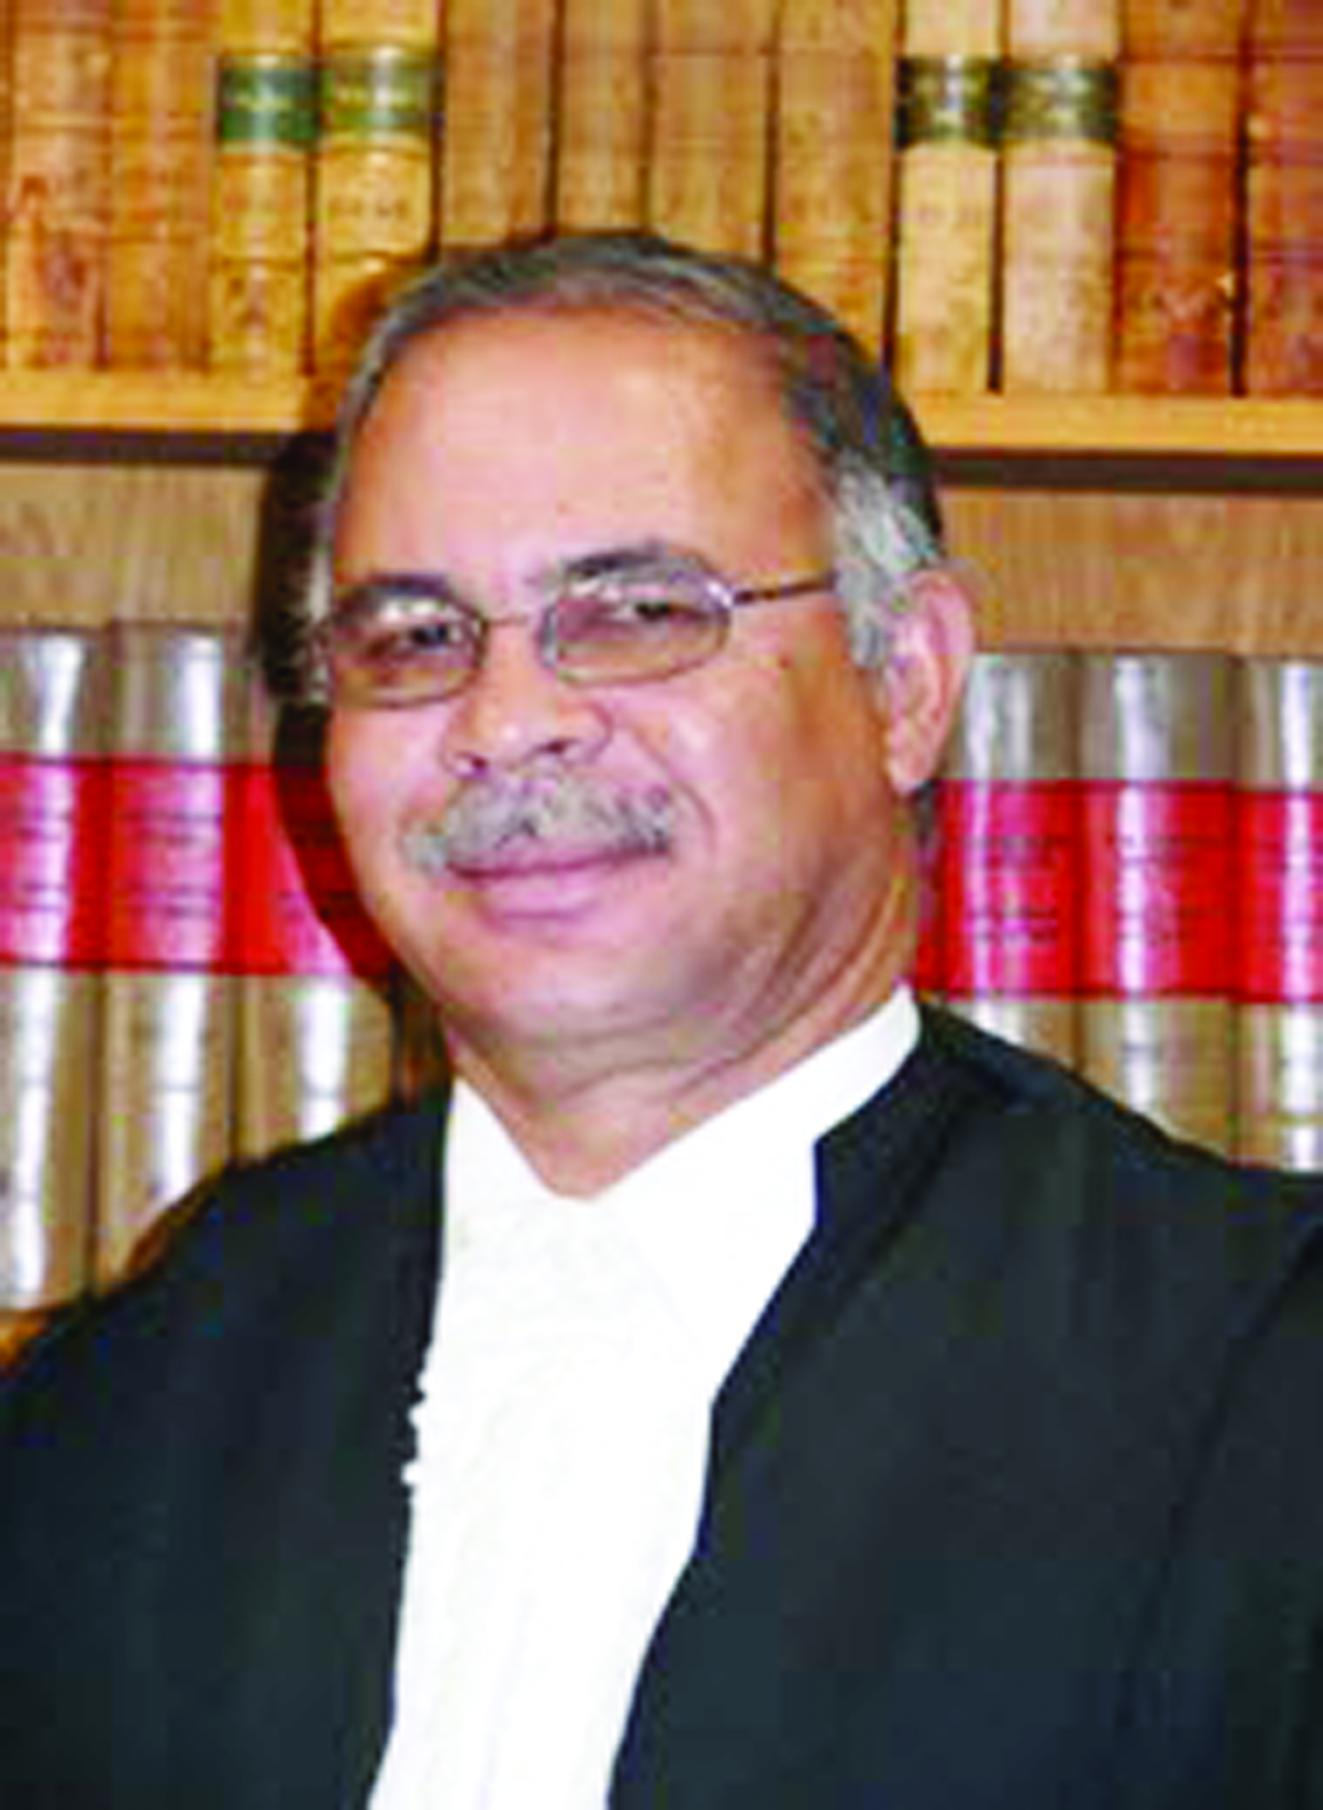 Justice Hoff joins appeals bench